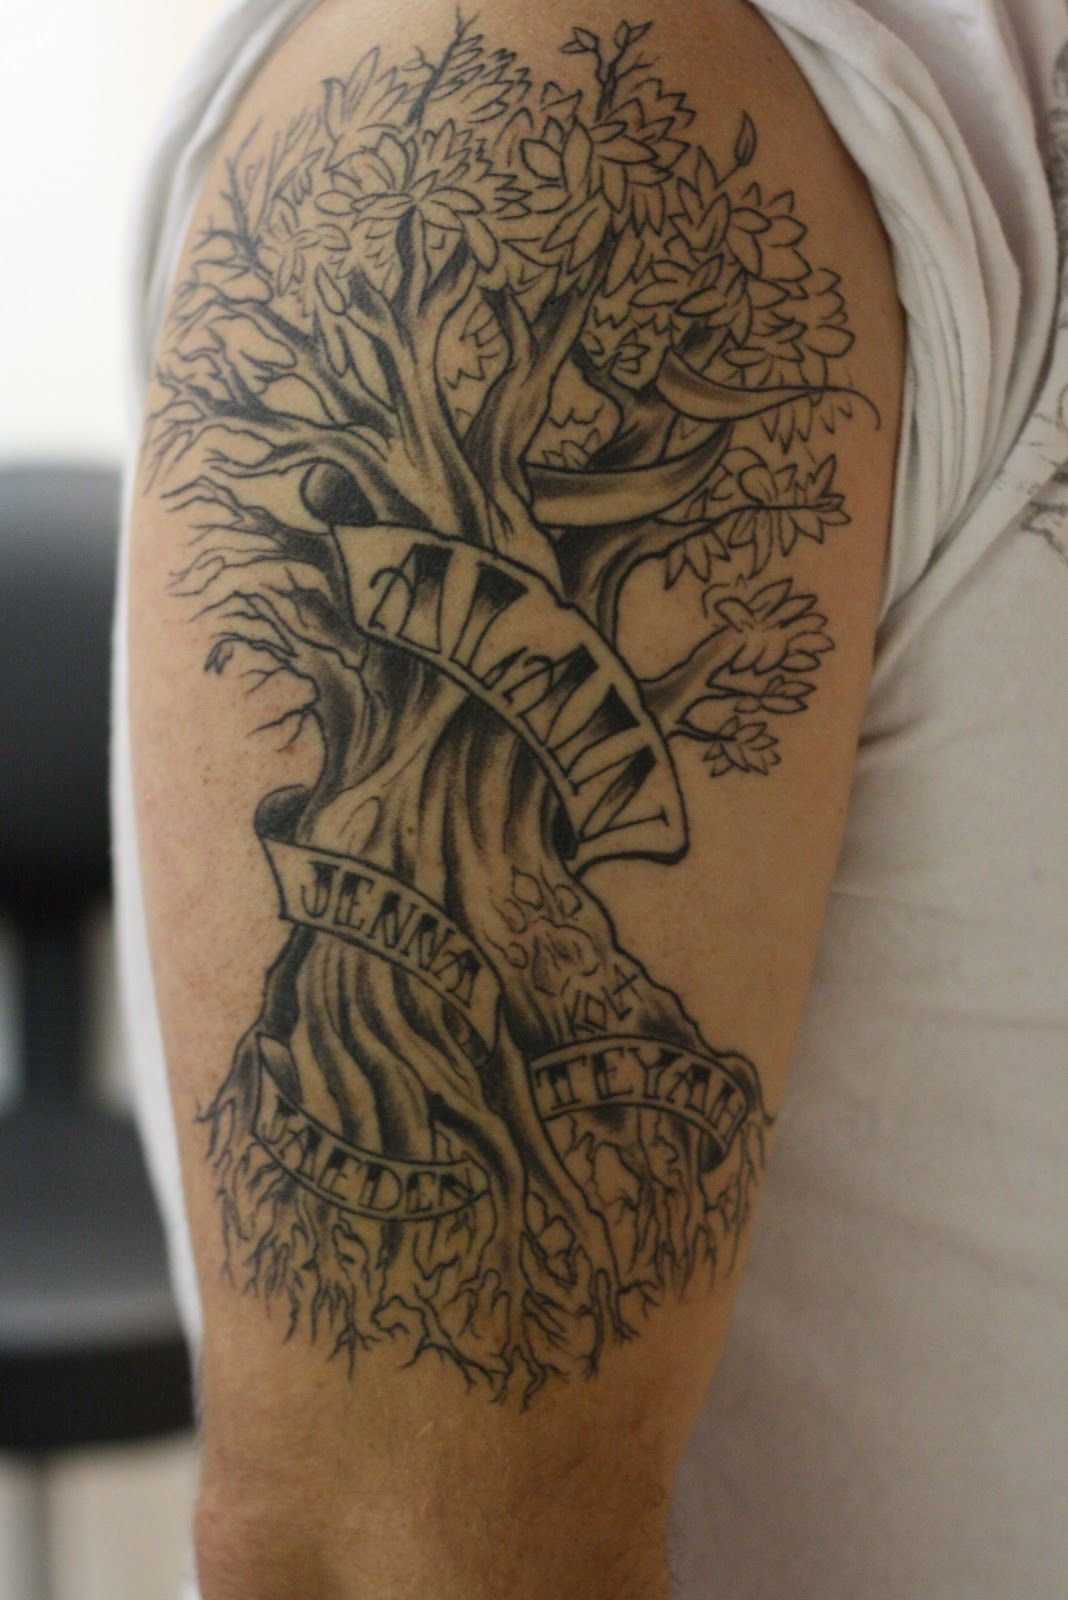 Family tattoos for men family tattoo designs tattoo designs and family tattoos carry a special significance and mean something different to every person who gets buycottarizona Images